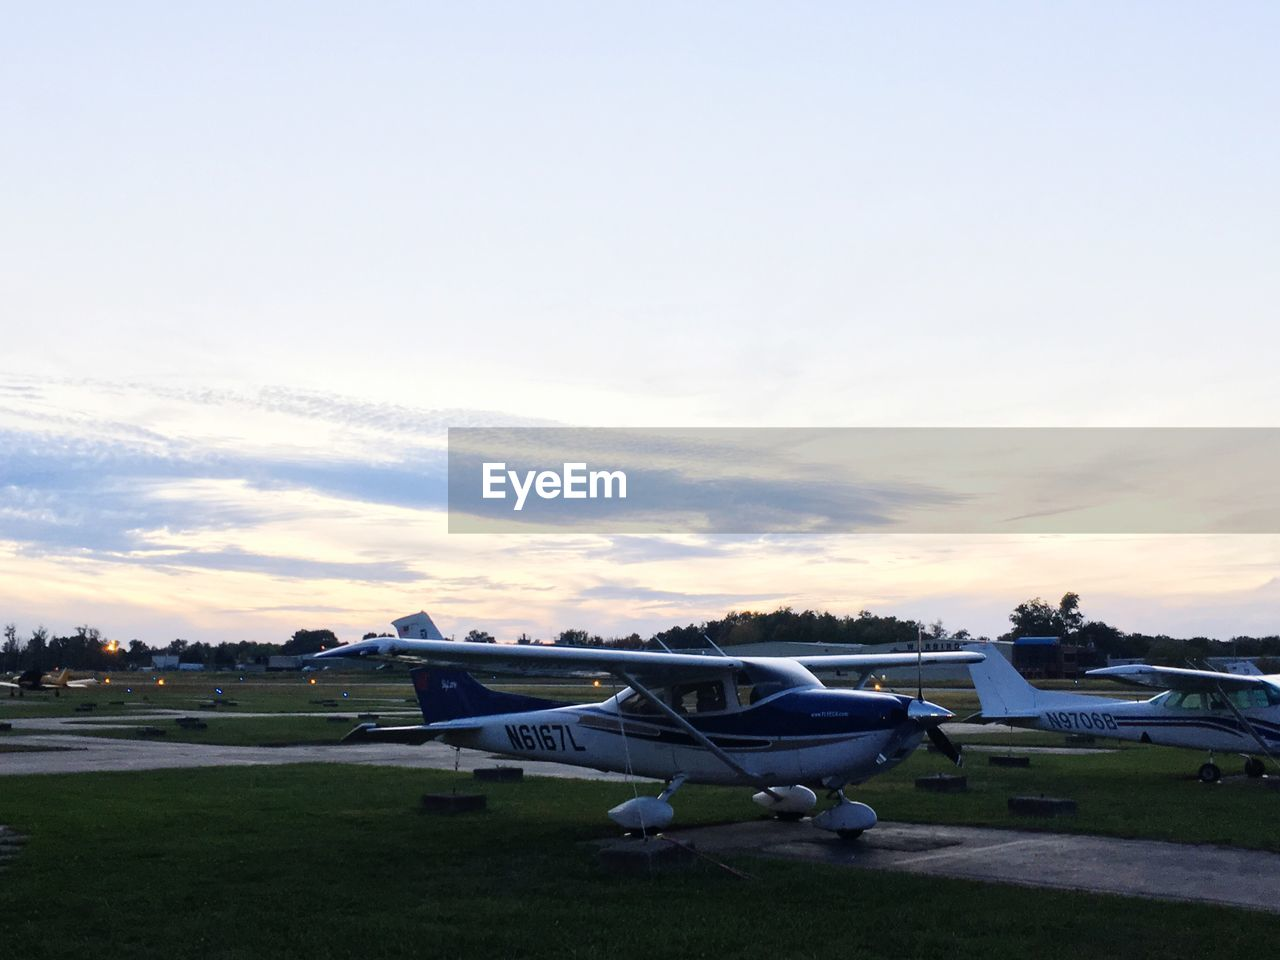 sky, sunset, cloud - sky, airplane, field, outdoors, no people, nature, transportation, air vehicle, landscape, scenics, grass, beauty in nature, day